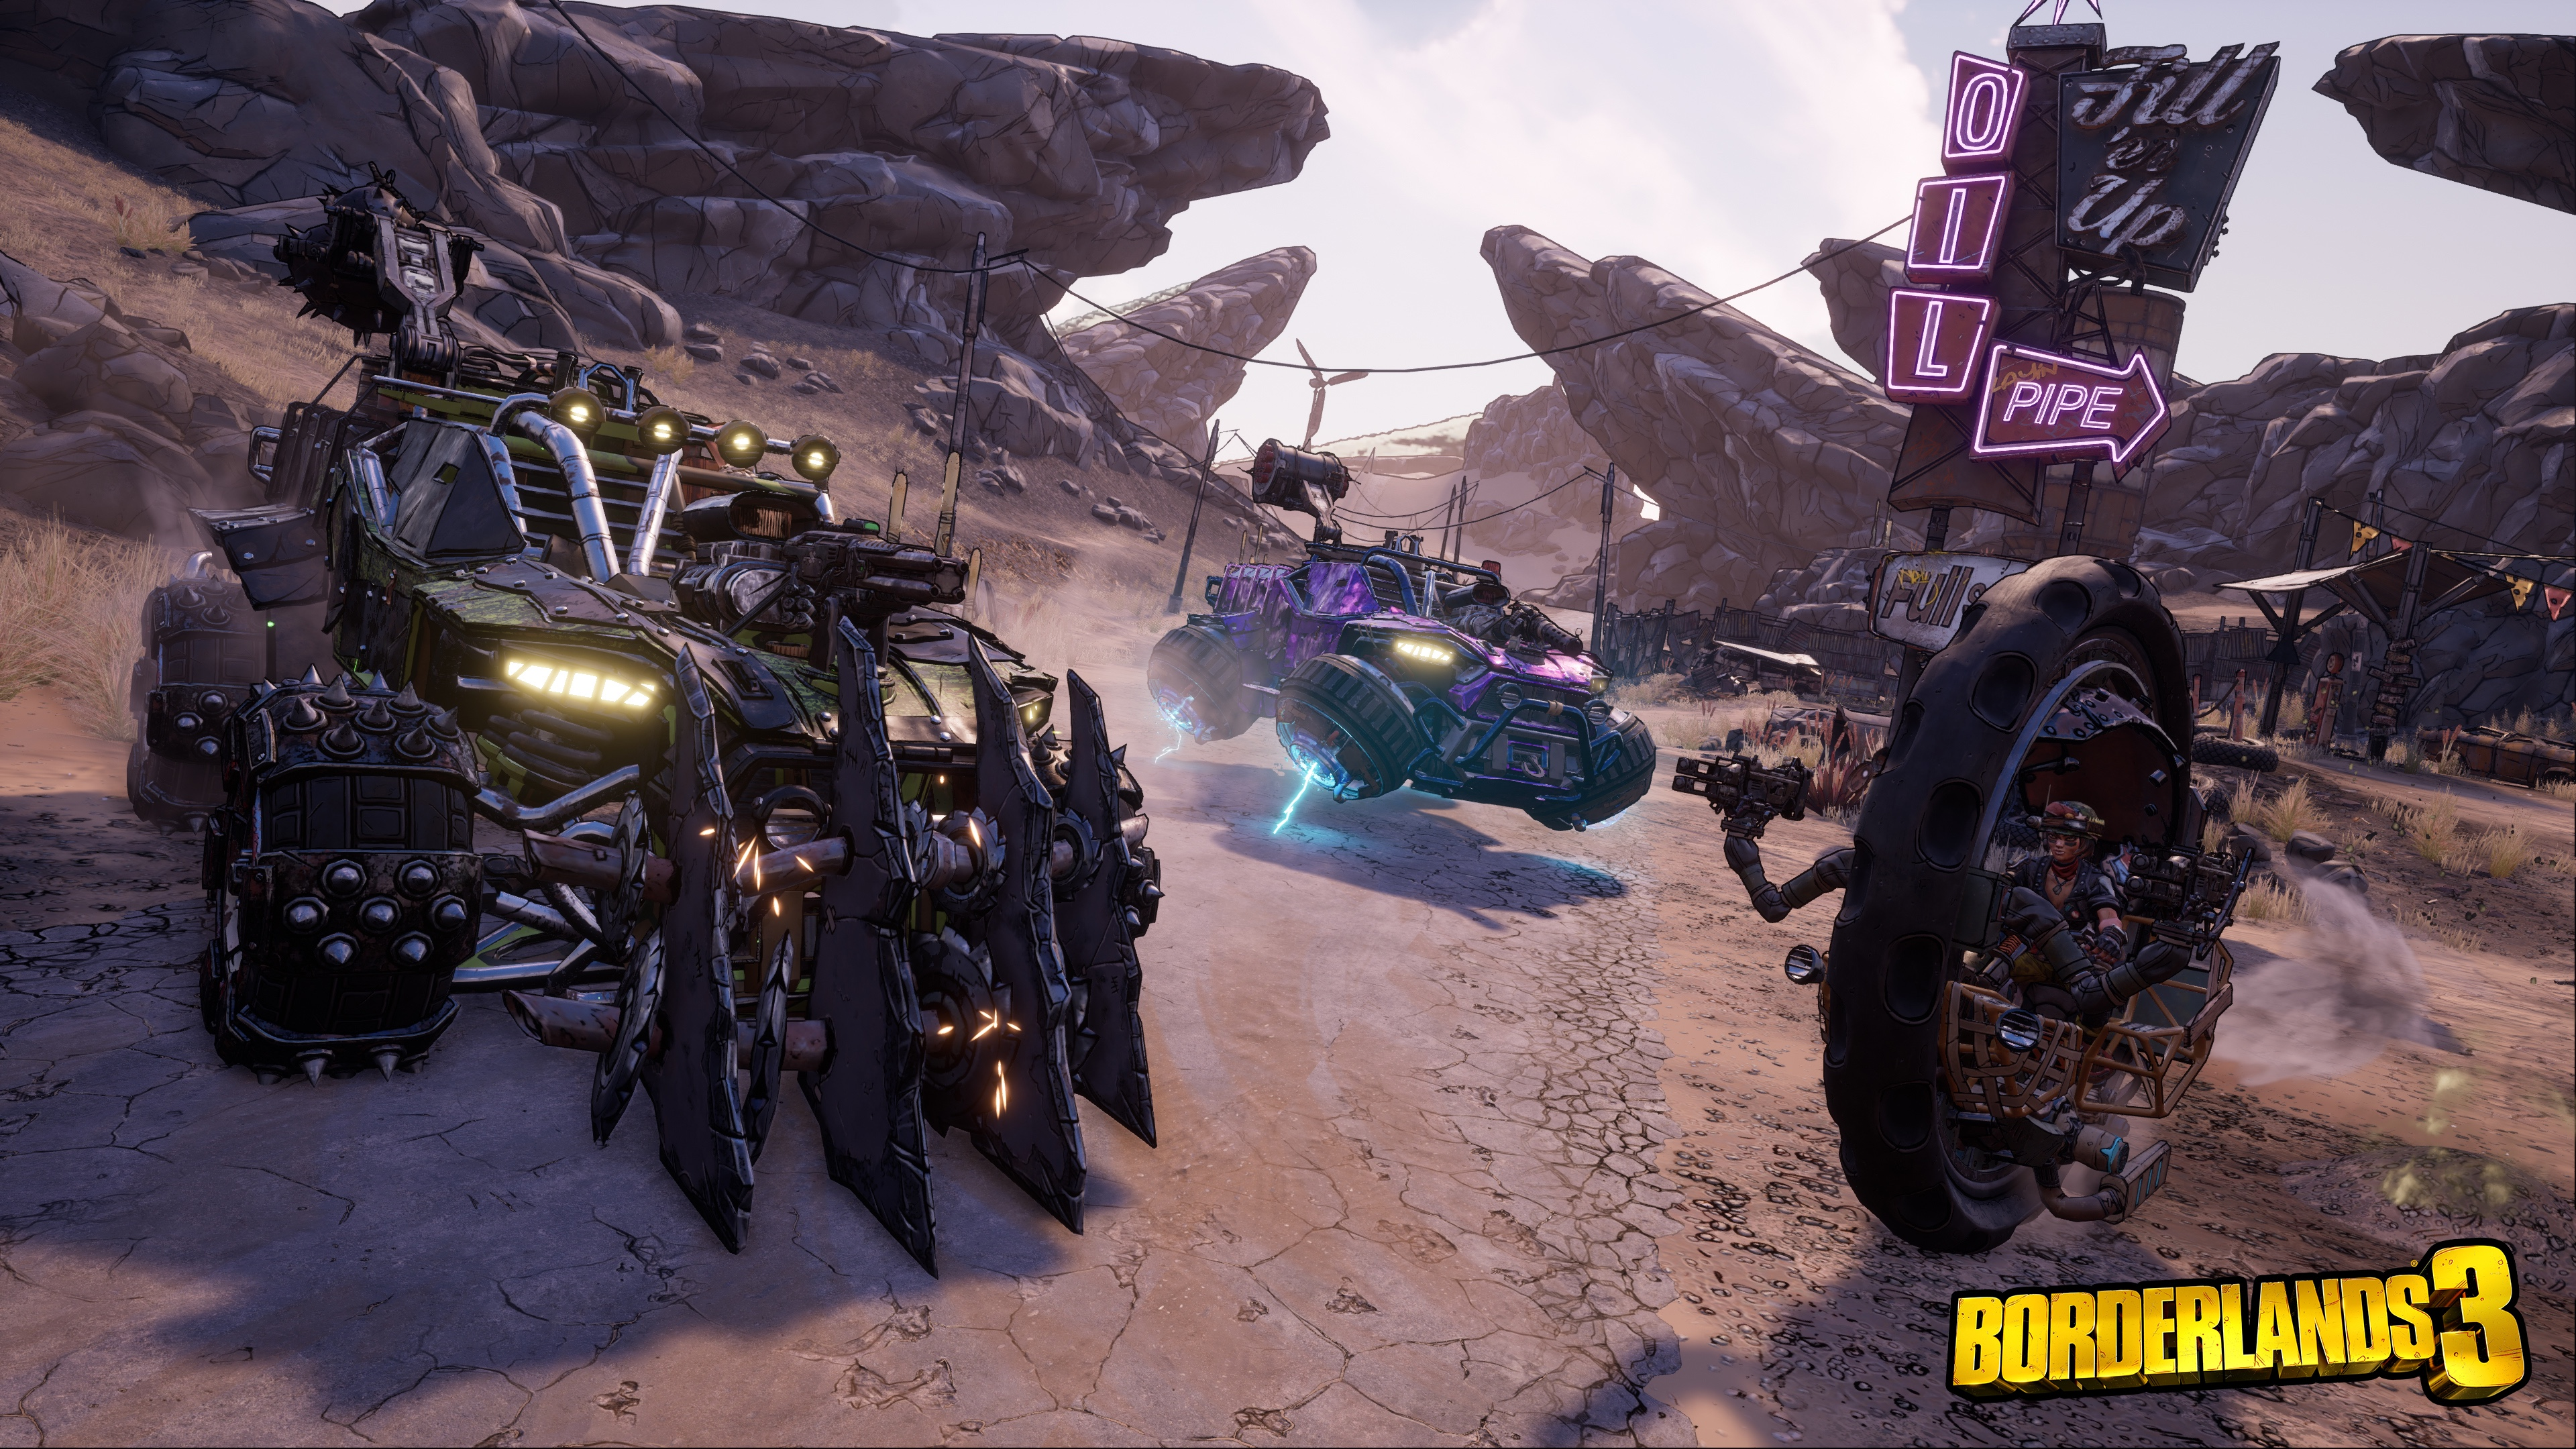 Borderlands 3: release date announced, new trailer, special